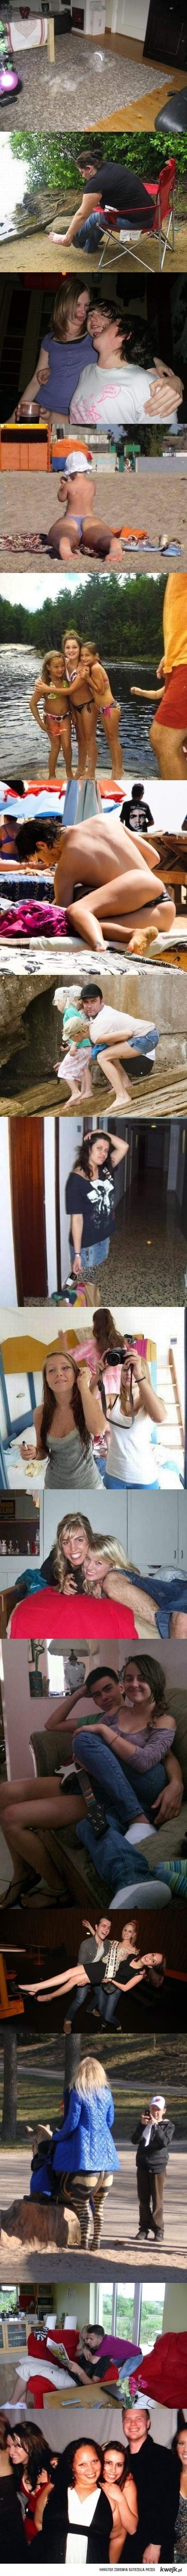 No matter how hard I try I cannot understand the third photo!!